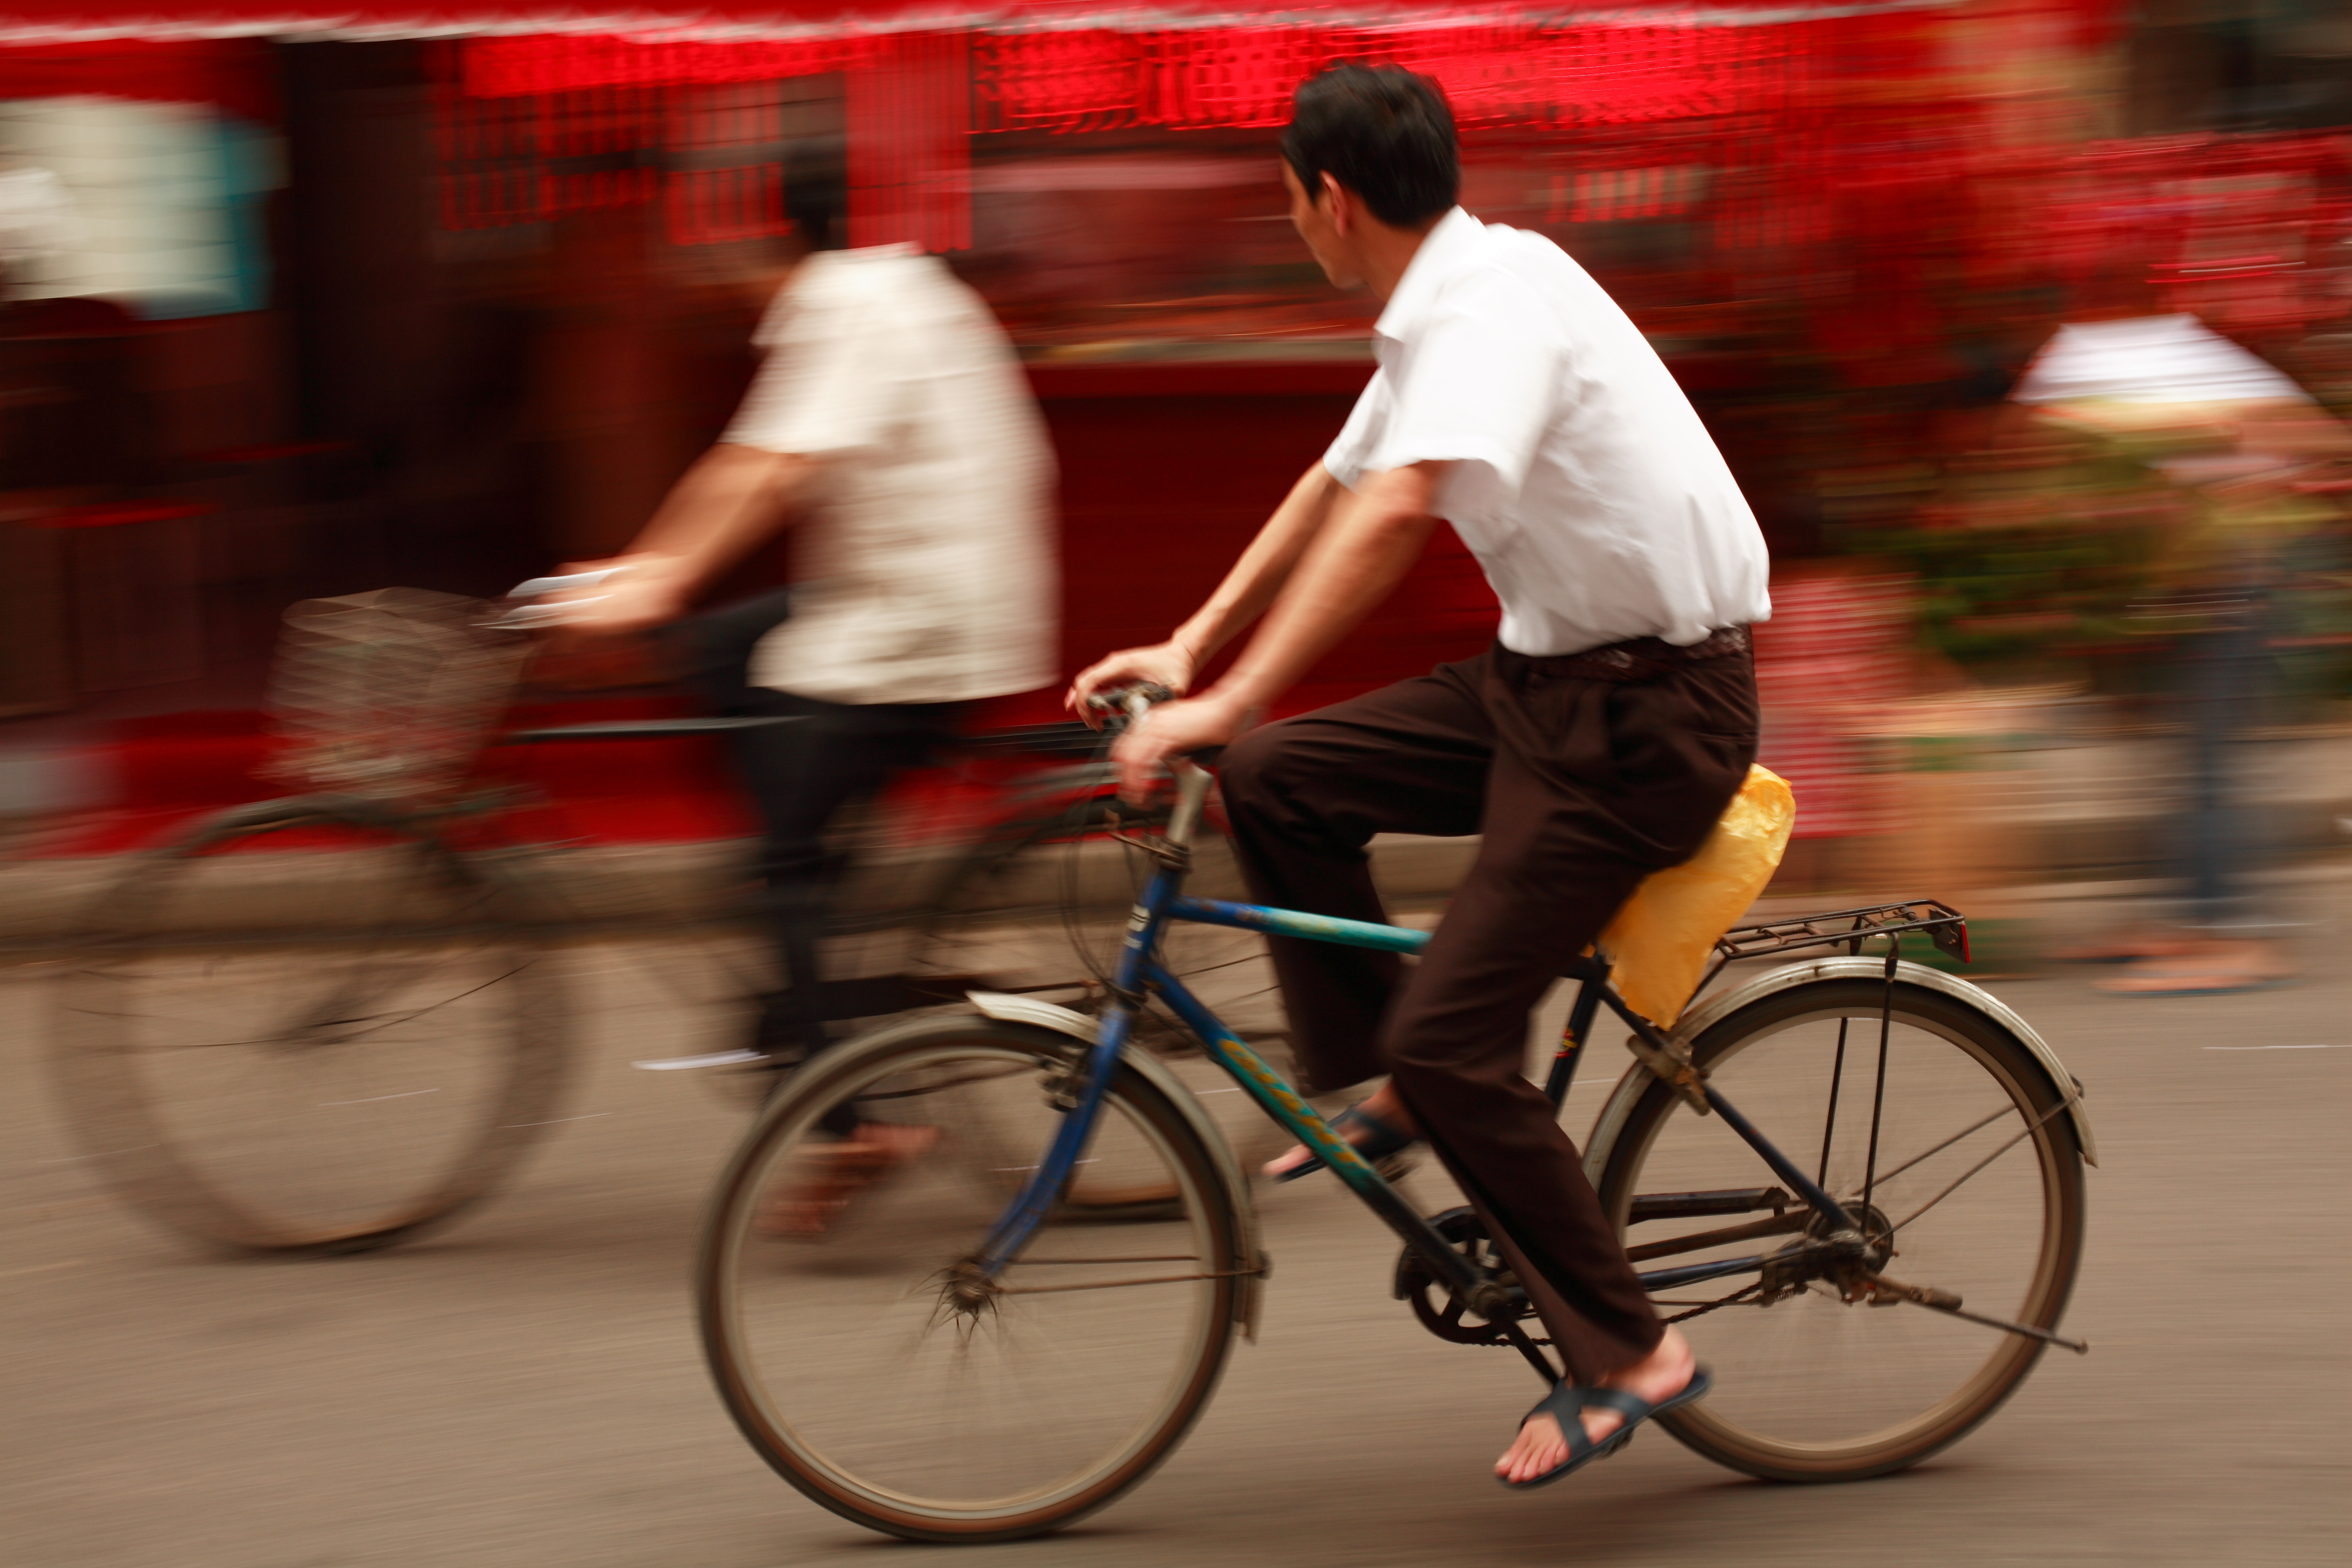 <p>A cyclist in Shanghai. Flickr/Beyond Neon.</p>